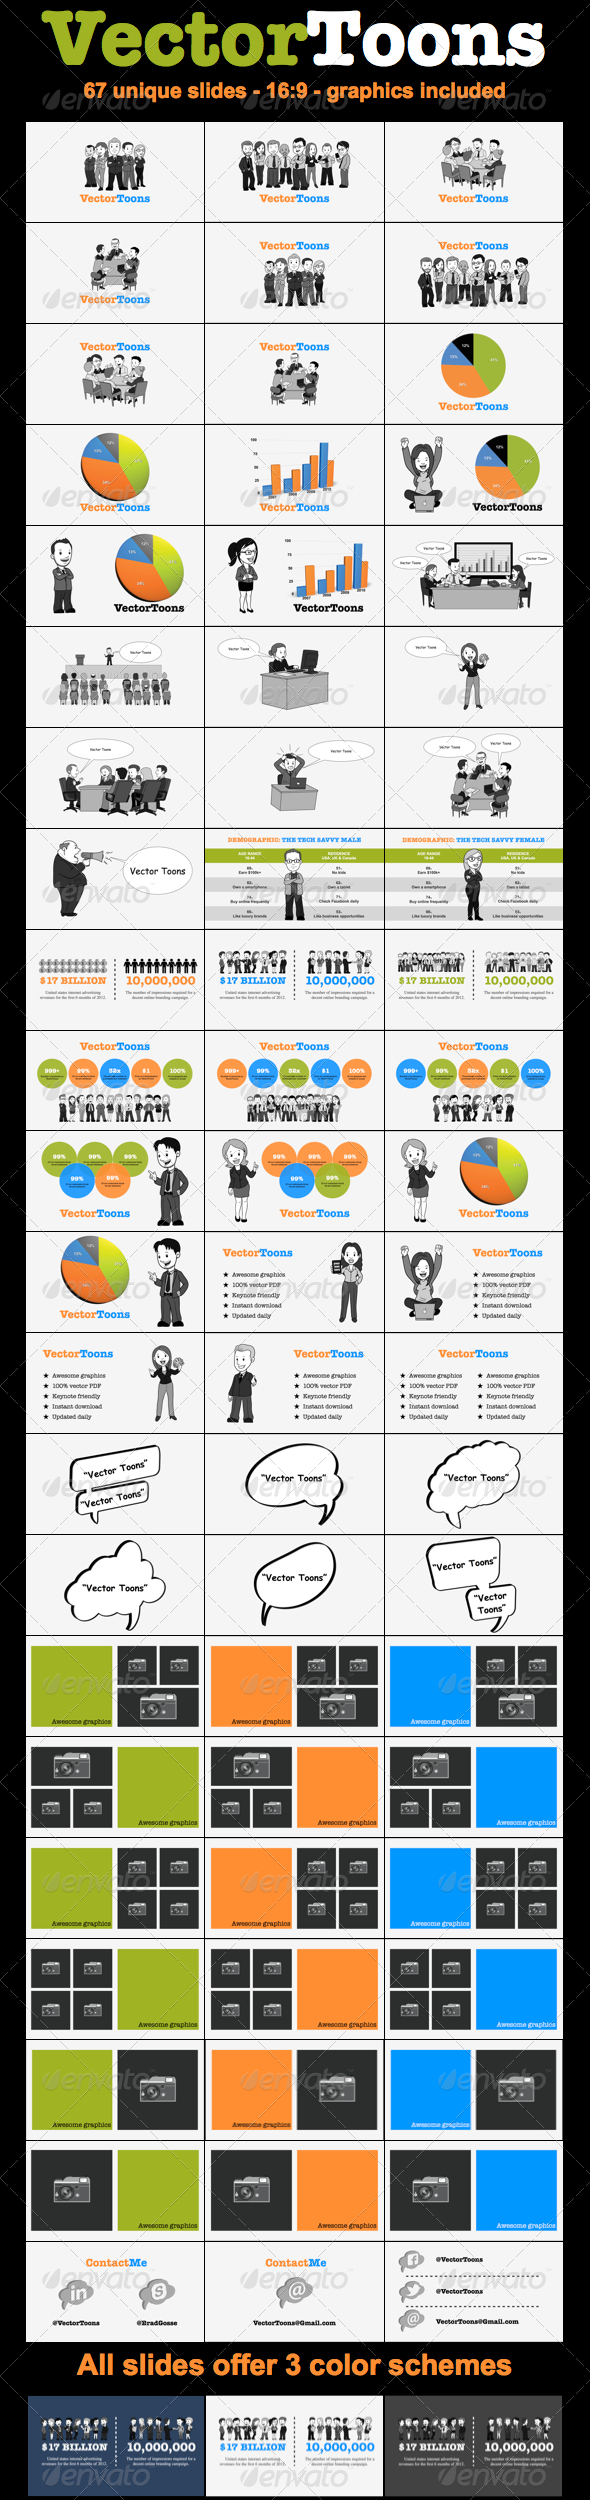 GraphicRiver Vector Toons Infographic and Comics 4884858